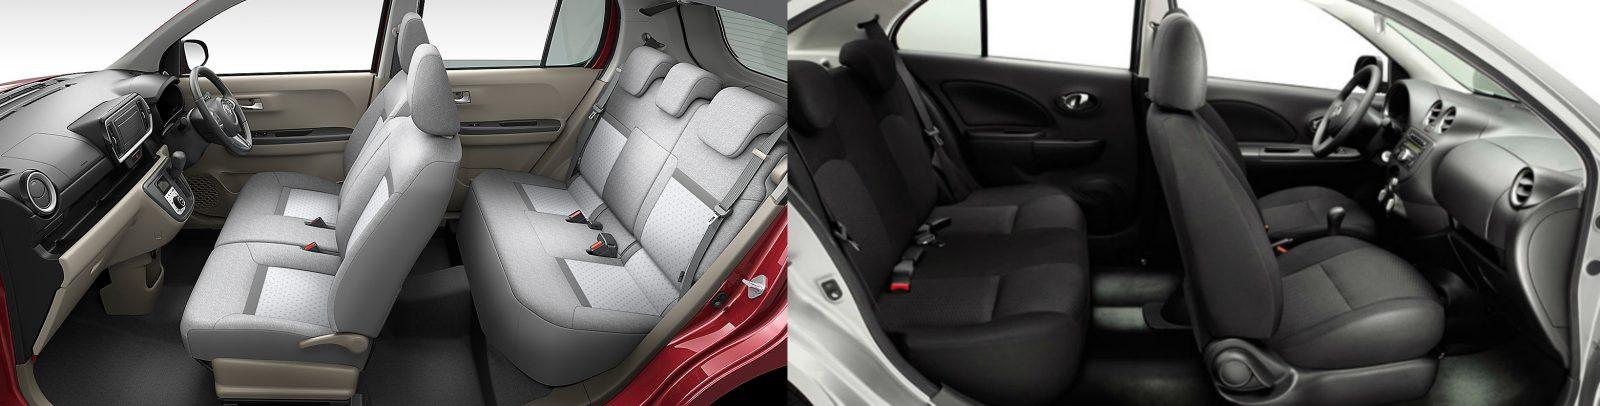 Toyota Passo Vs Nissan March Interiors